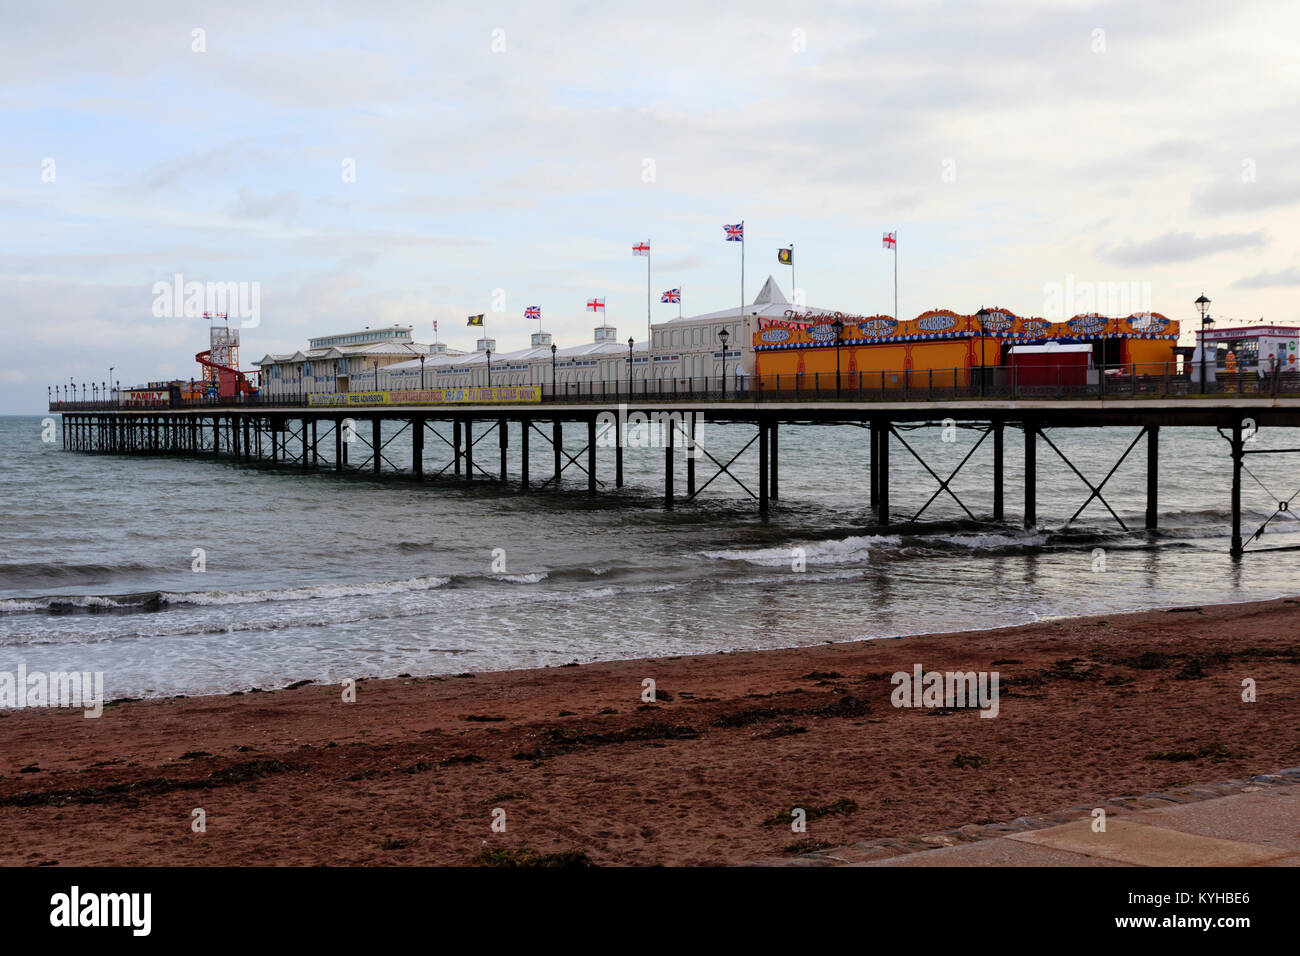 Amusements and arcades cover the length of the Victorian pier at Paignton, South Devon, UK - Stock Image